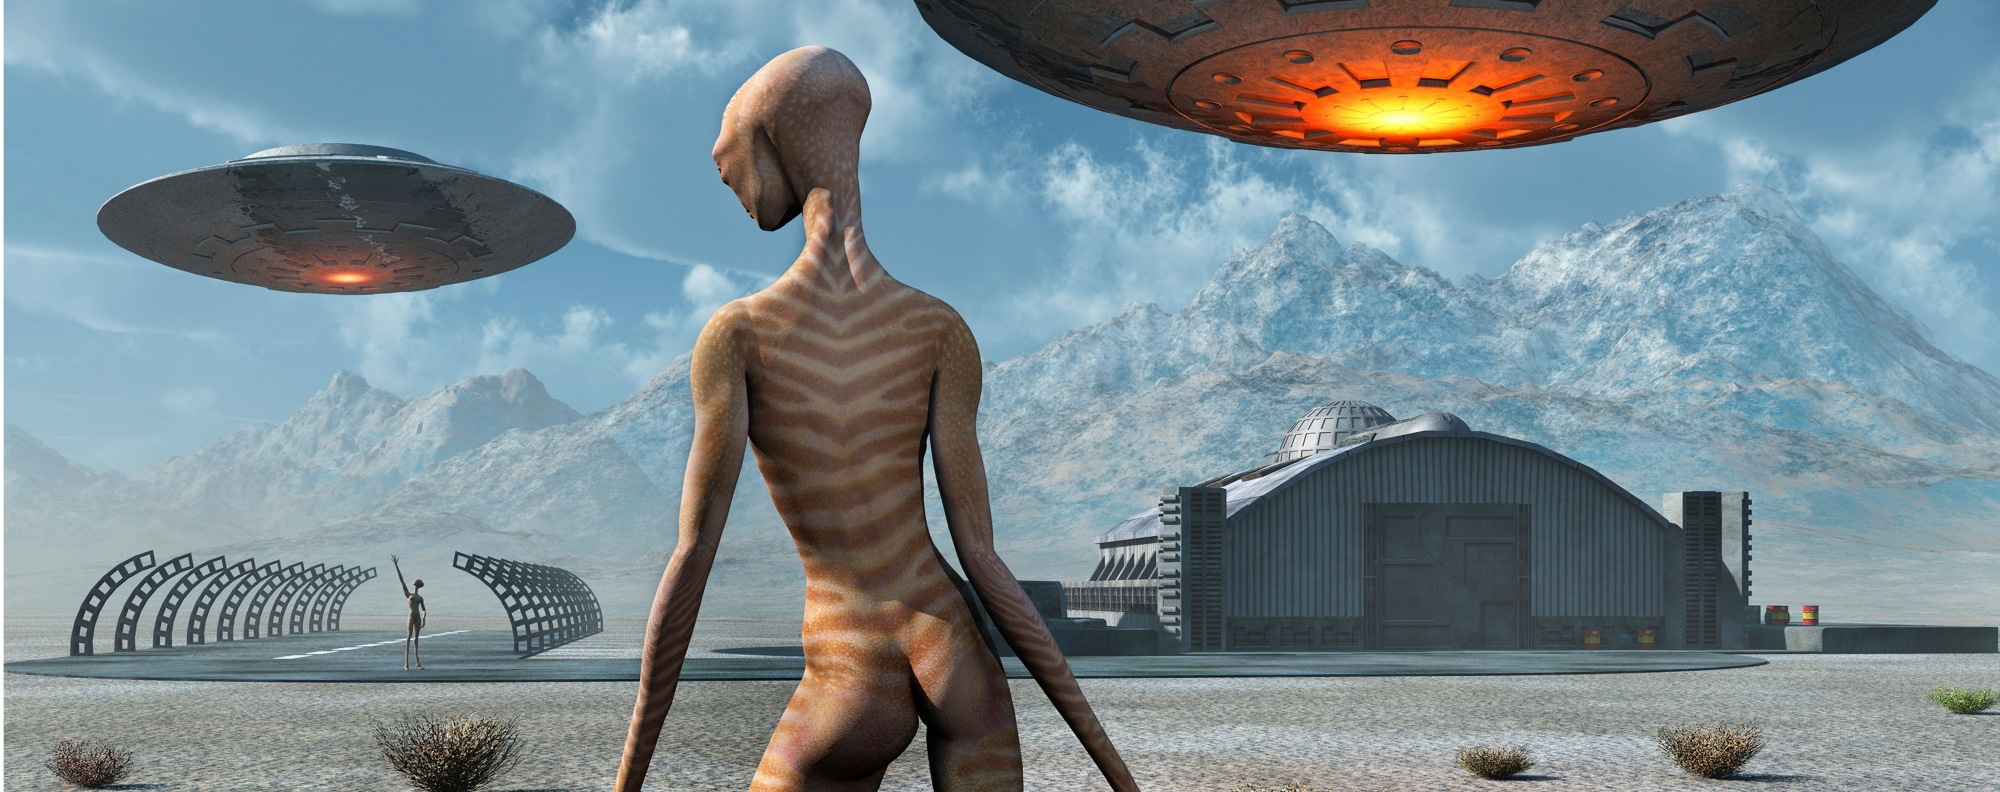 China could make first contact with aliens. Would Beijing tell the world? Might it spell doom for the human race? 114